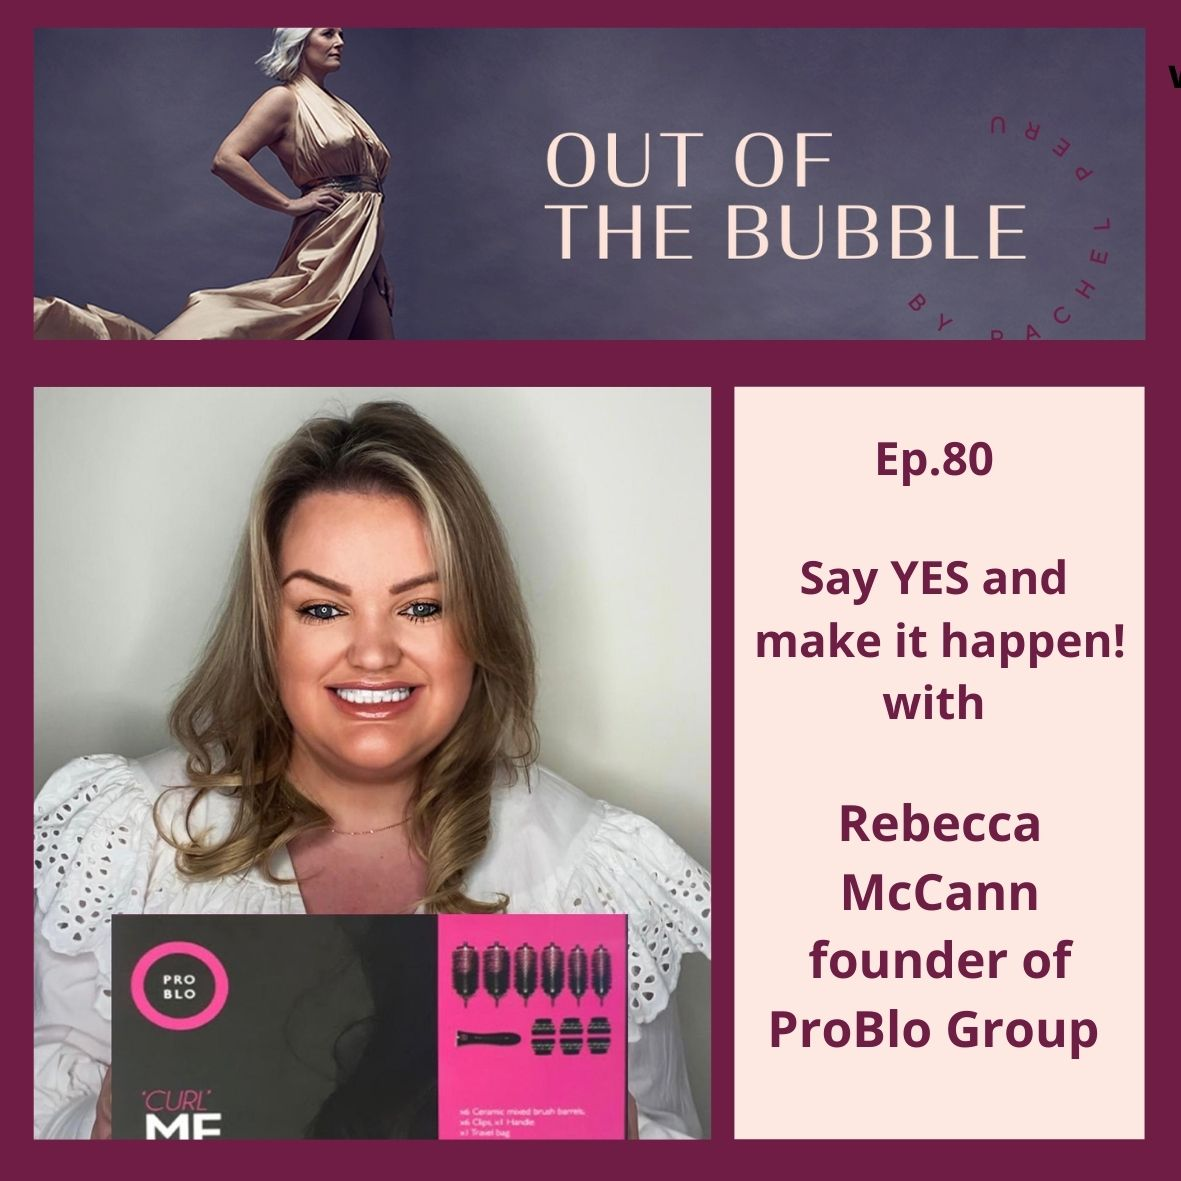 Ep.80 Out of the Bubble with Rebecca McCann, founder of Pro Blo Group.